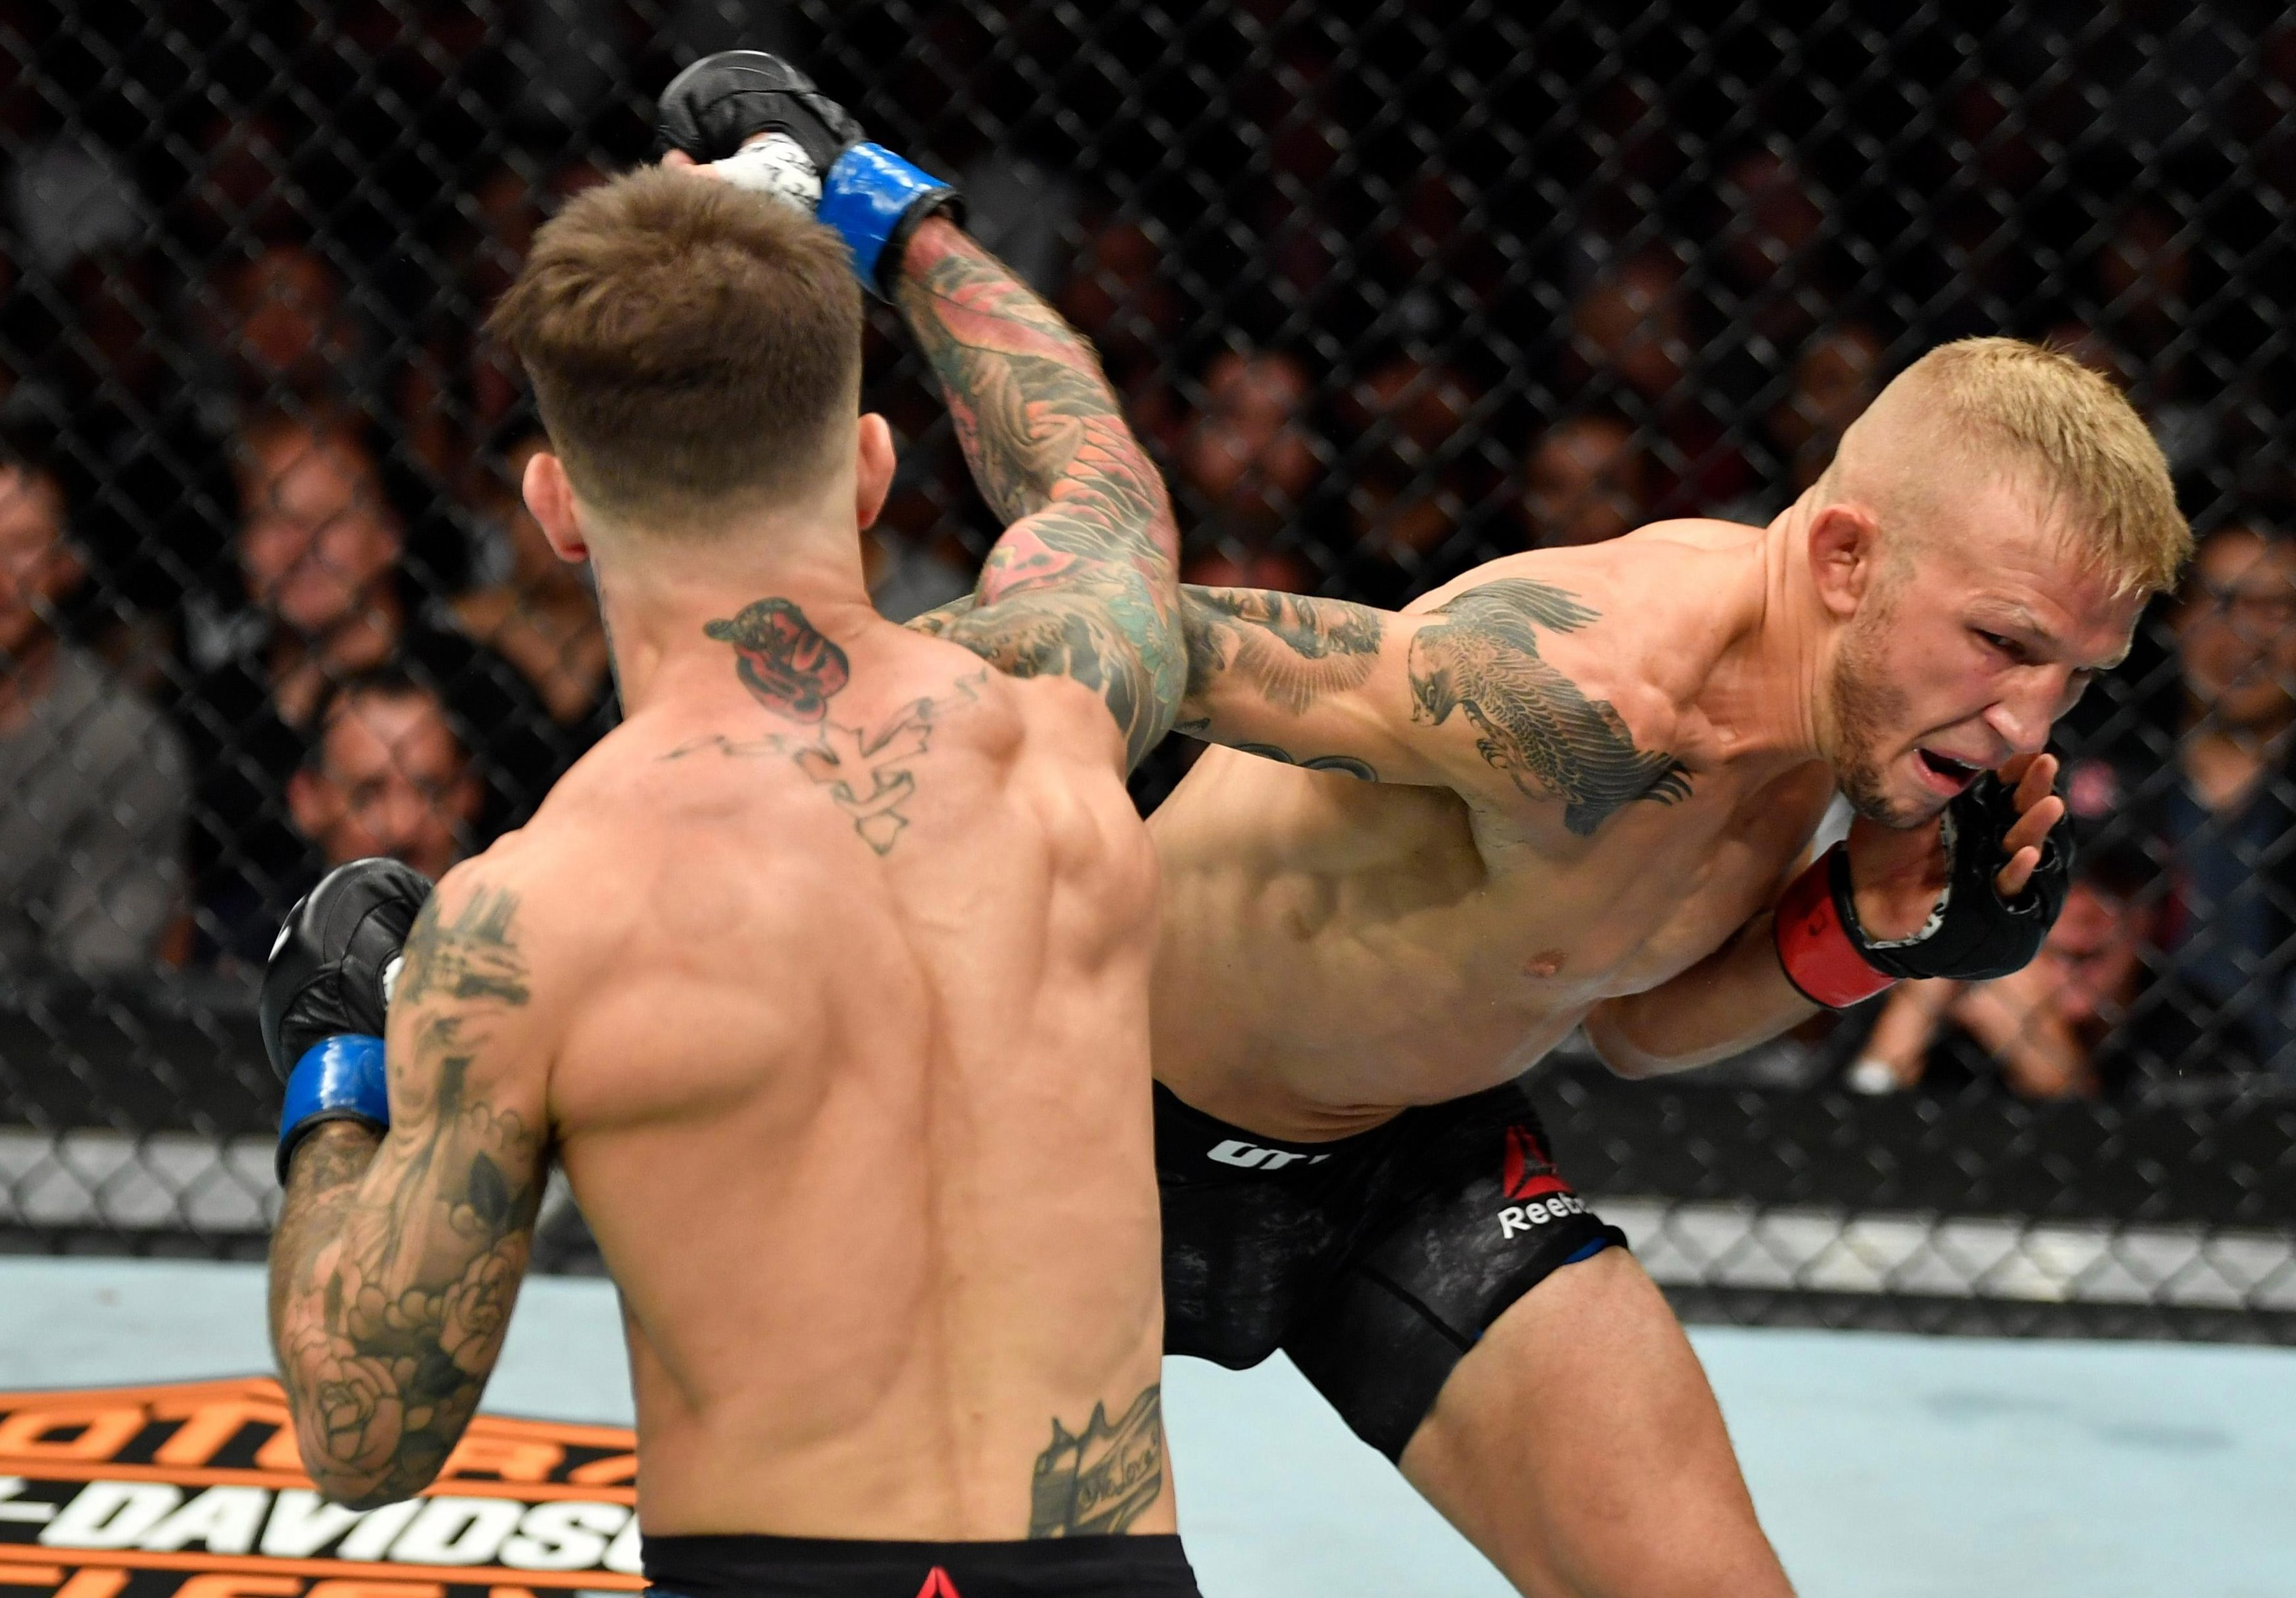 Dillashaw has said he would be willing to face flyweight champ Henry Cejudo following his emphatic win